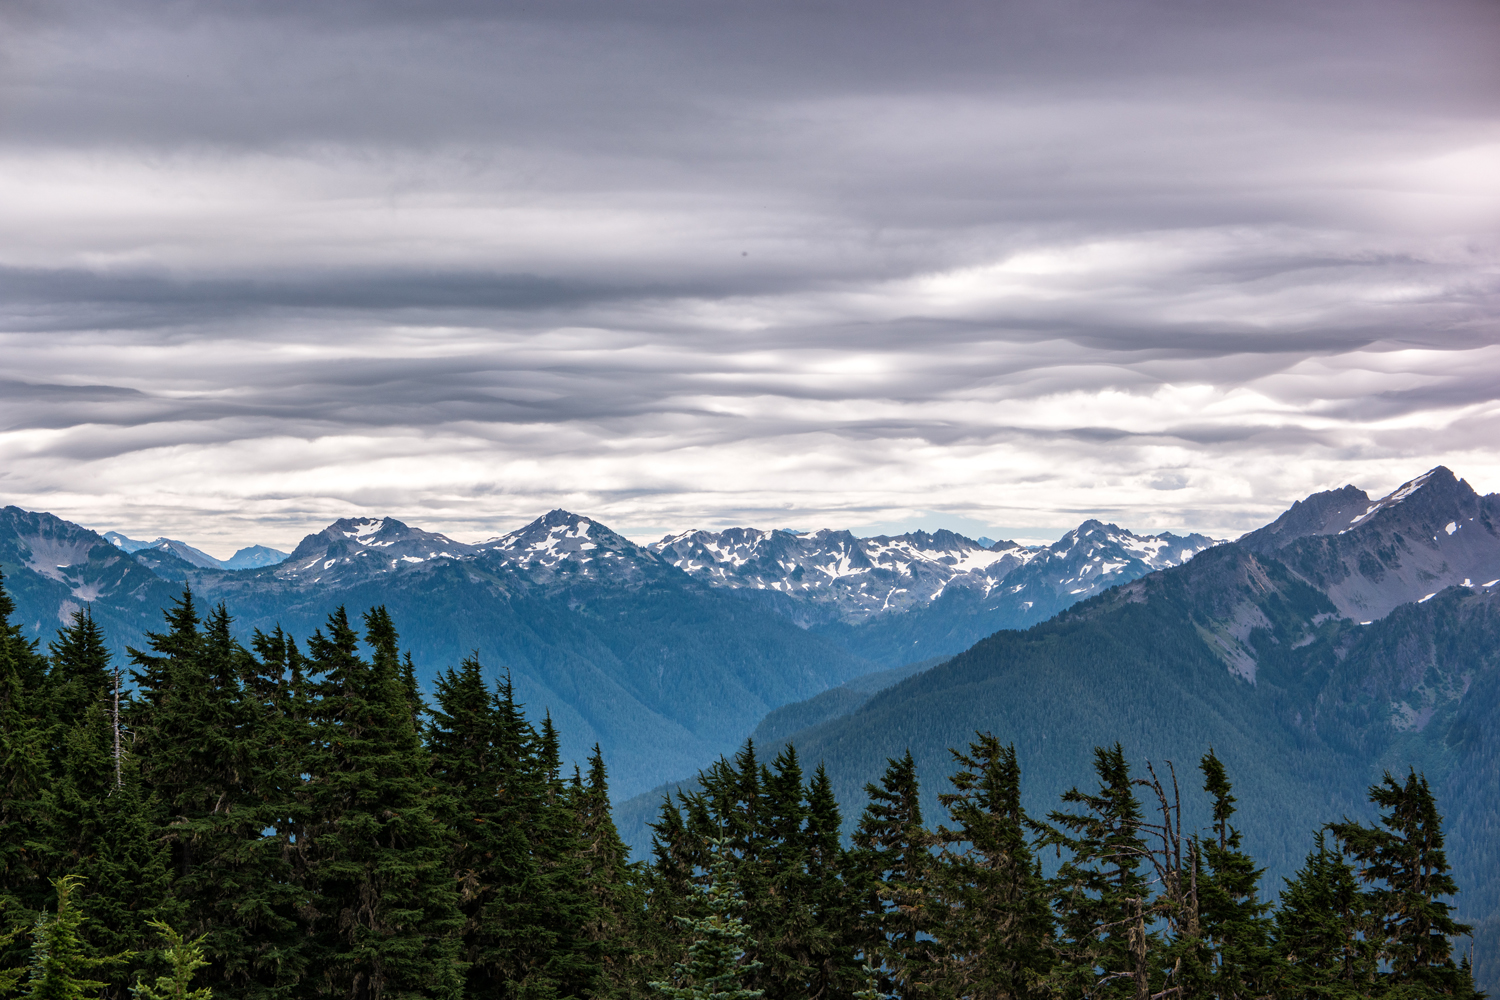 Wasim Muklashy Photography_Olympic National Park_High Divide Loop_043.jpg